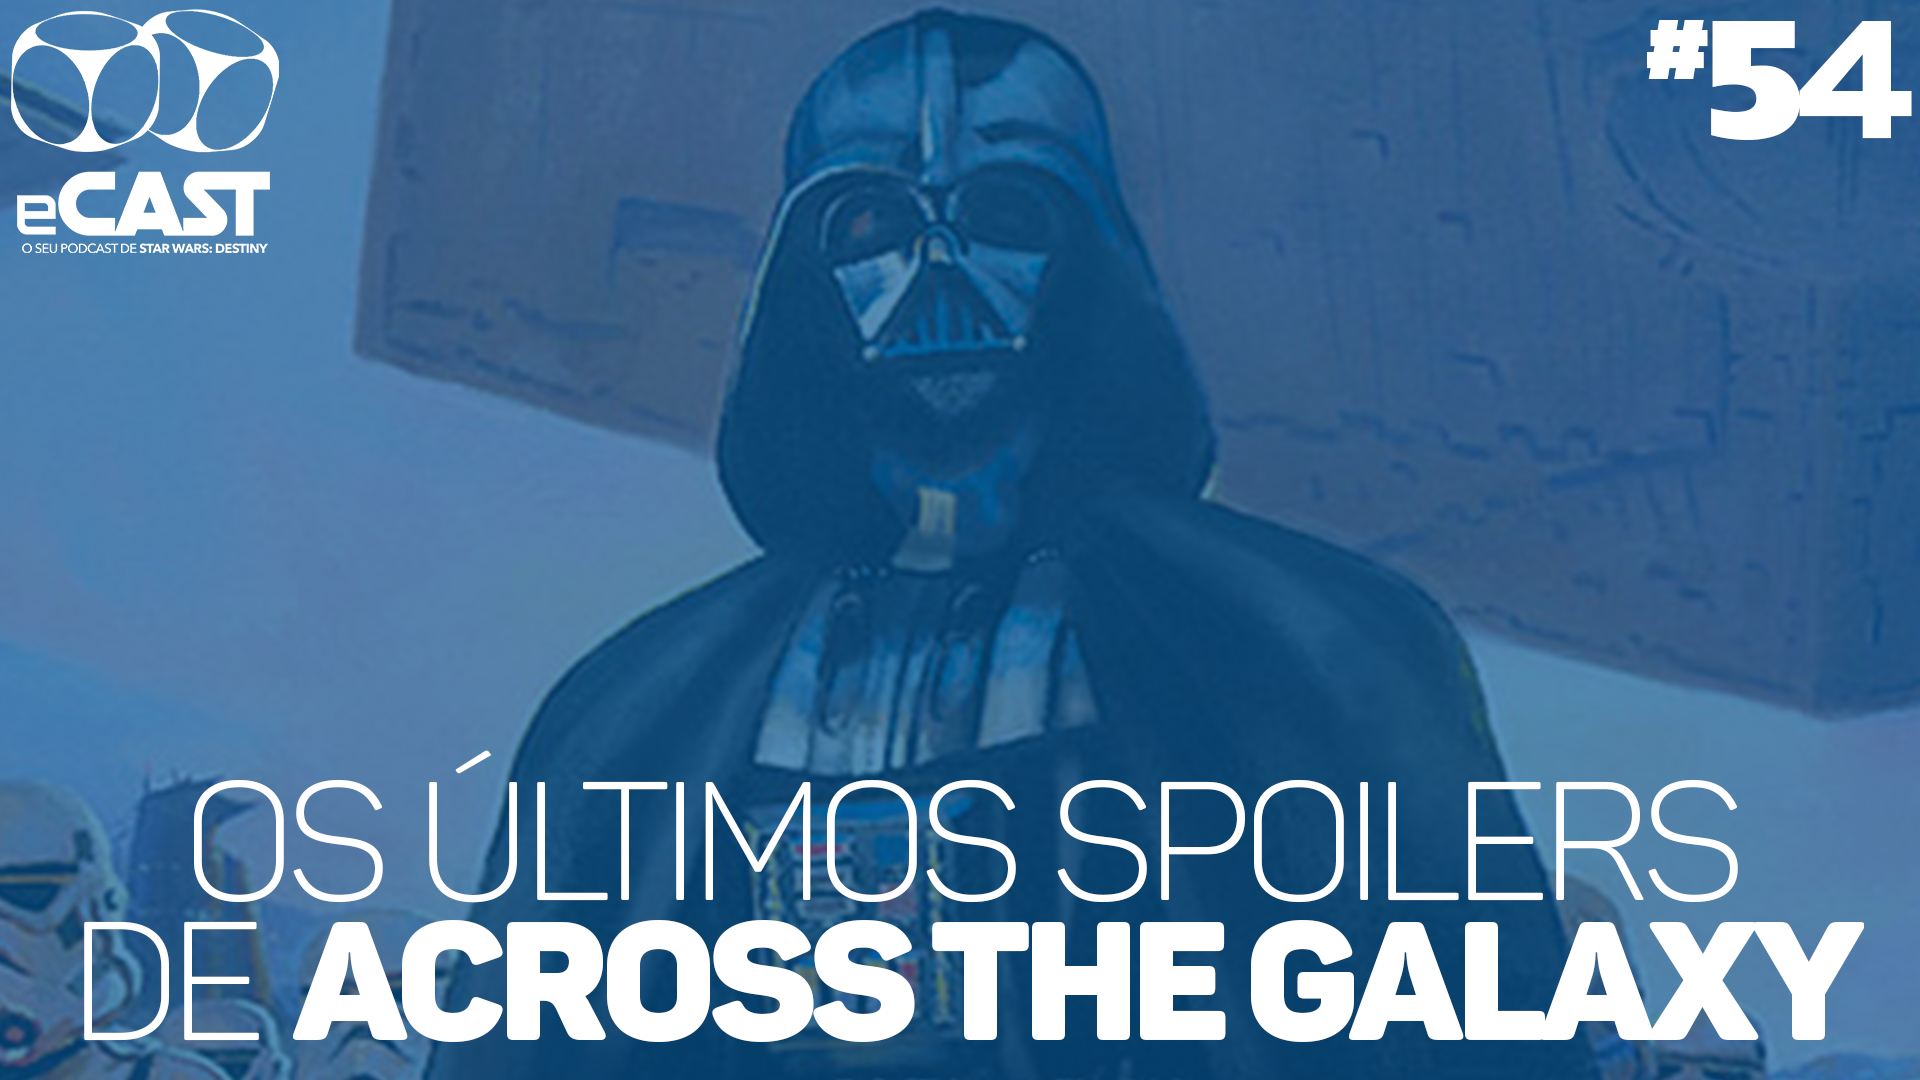 eCast 54 – Os últimos spoilers de Across the Galaxy